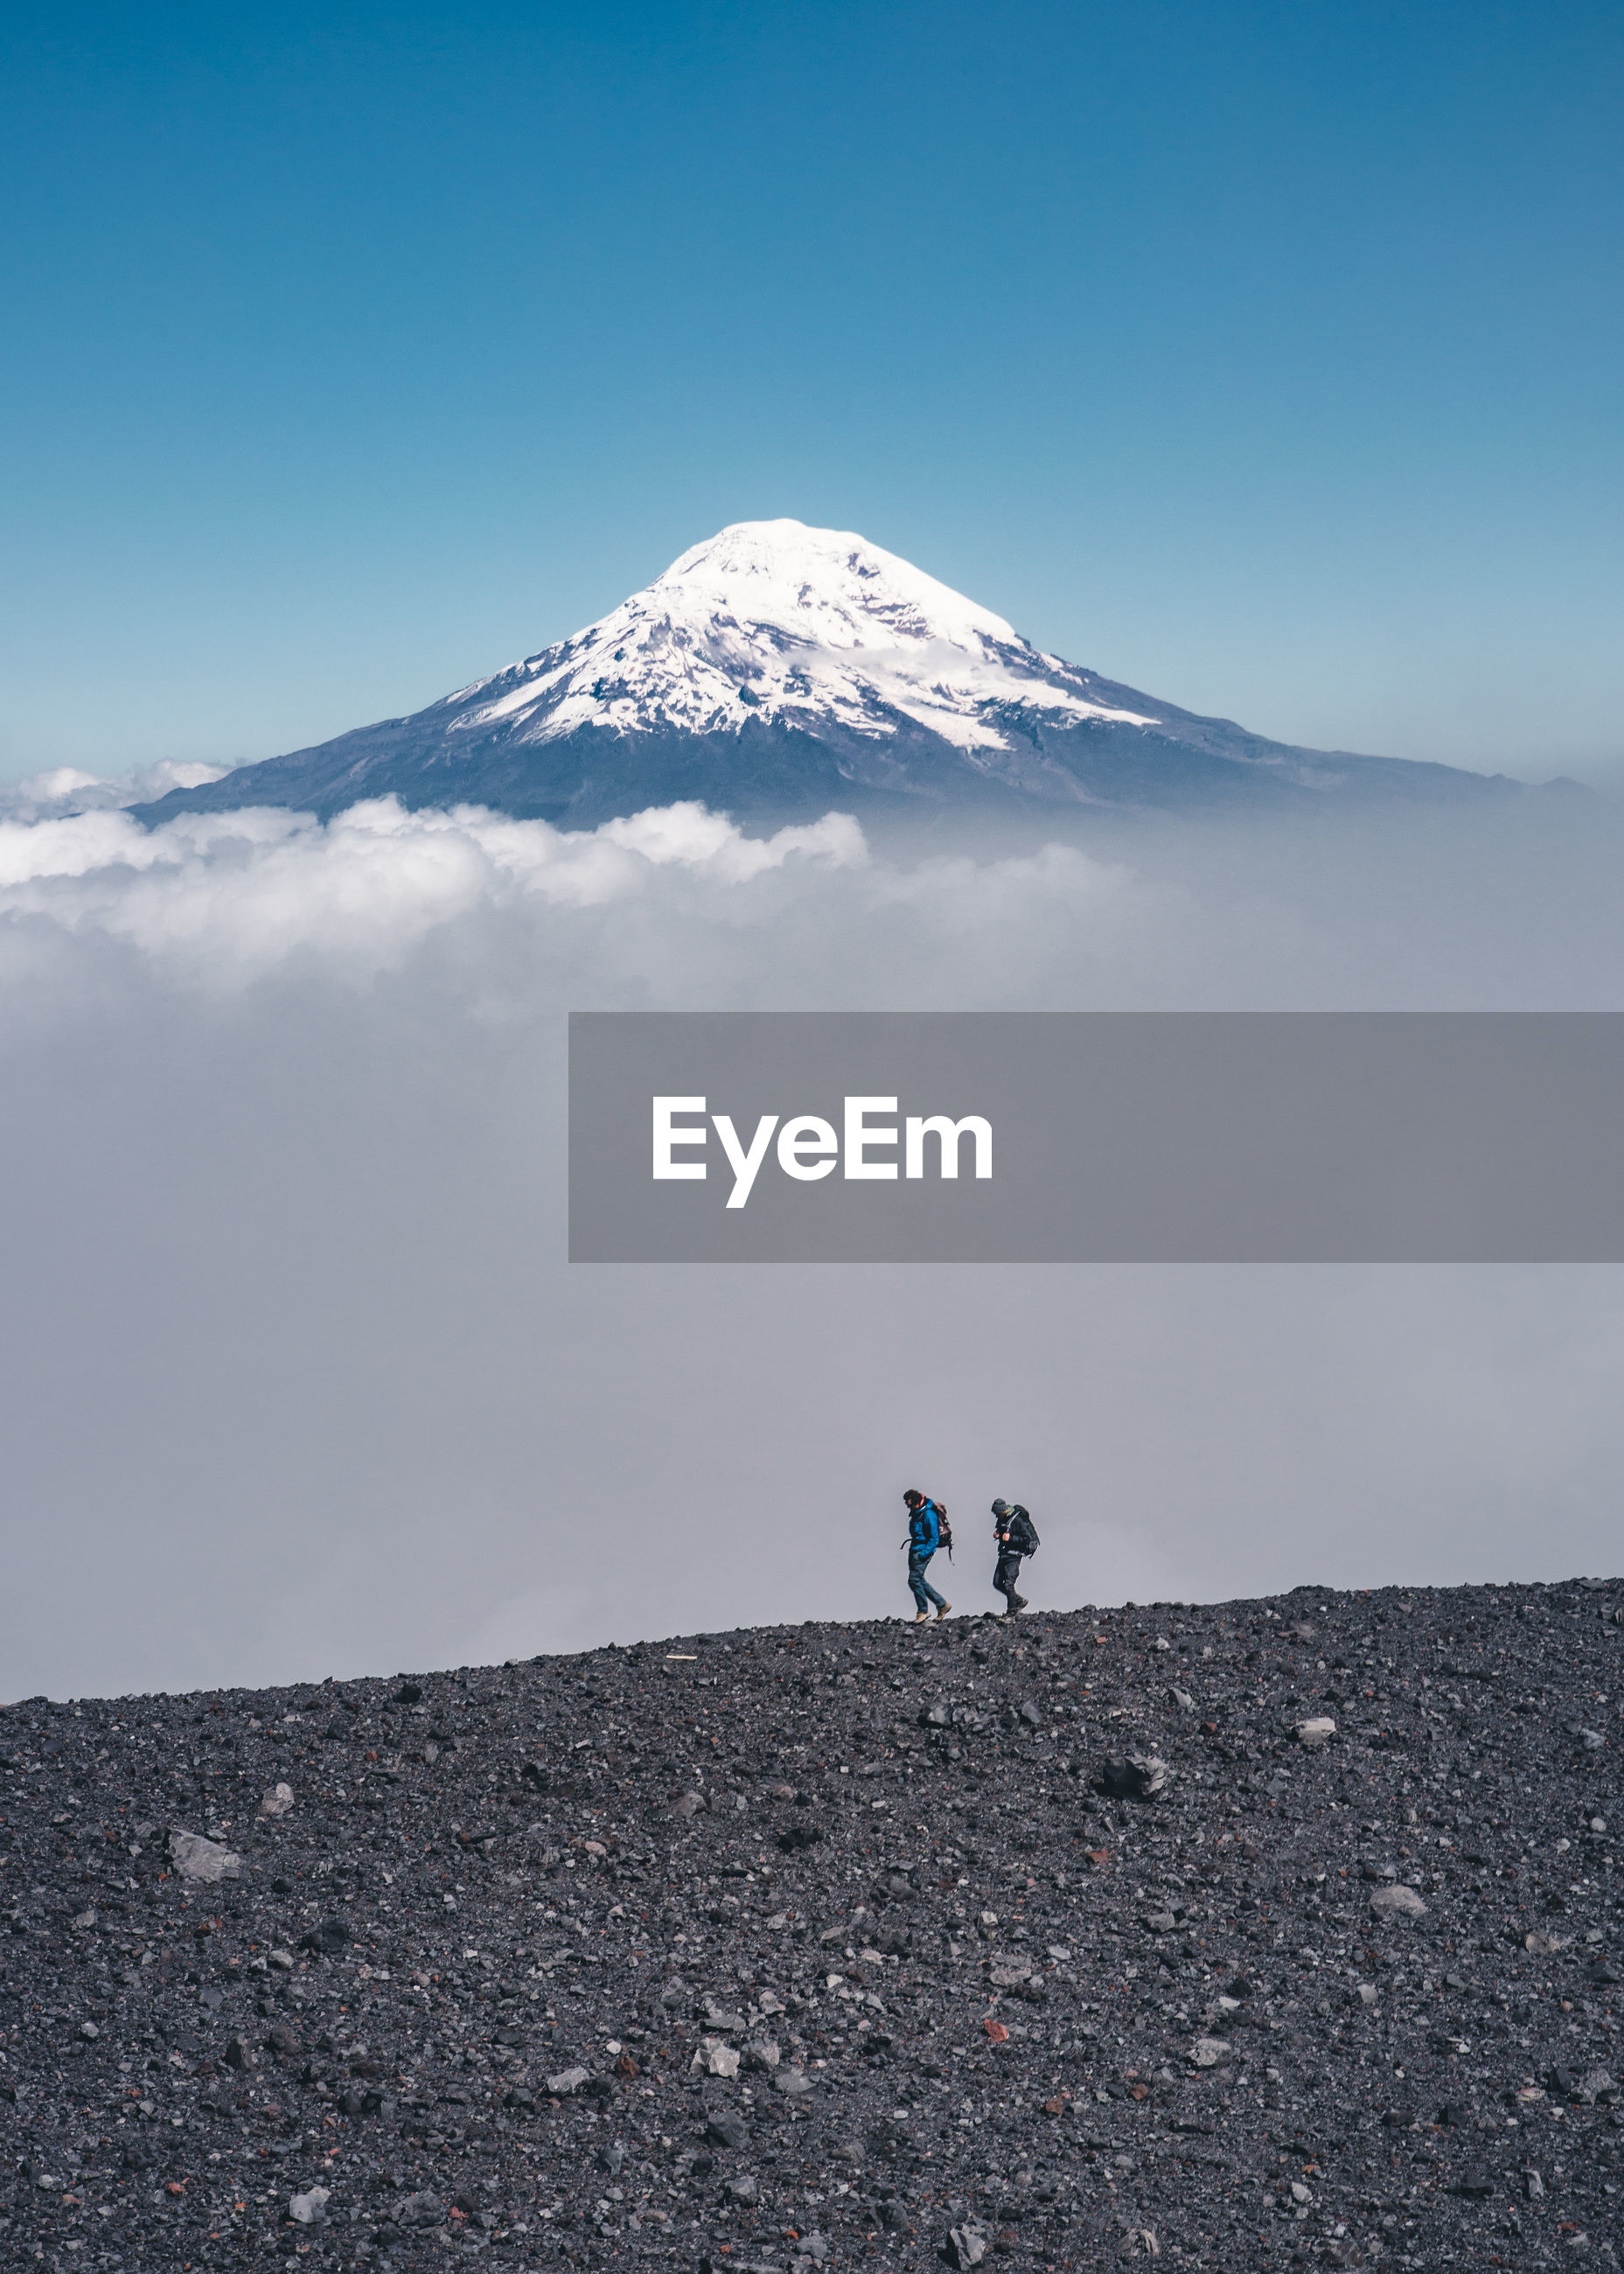 Mid distance view of people walking on land against mountain during foggy weather